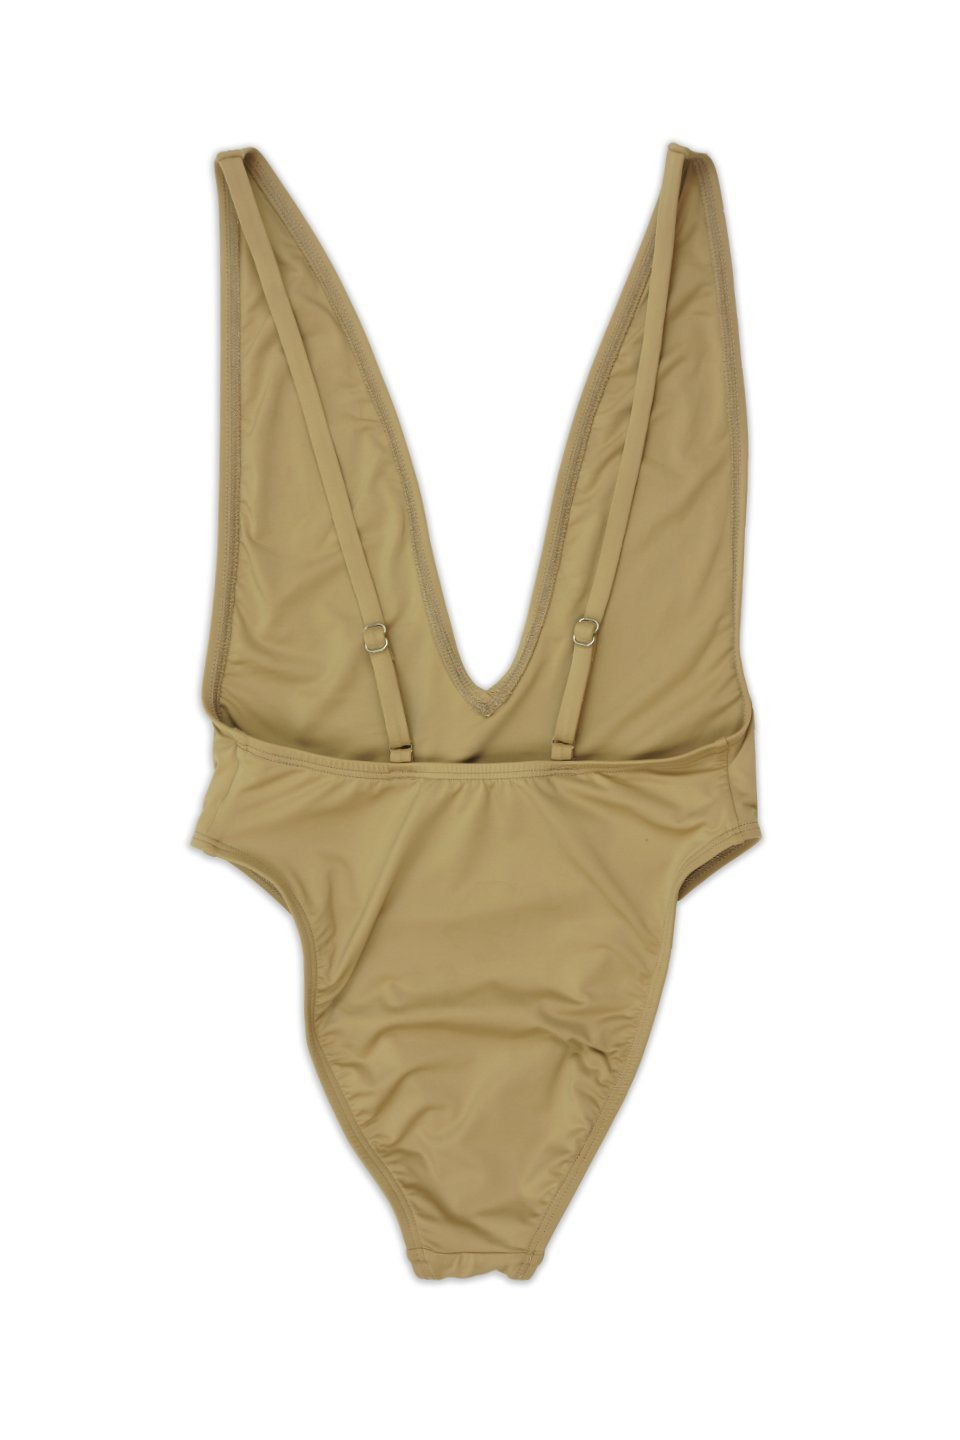 Low V-Neck Cheeky Coverage One-Piece - Beige